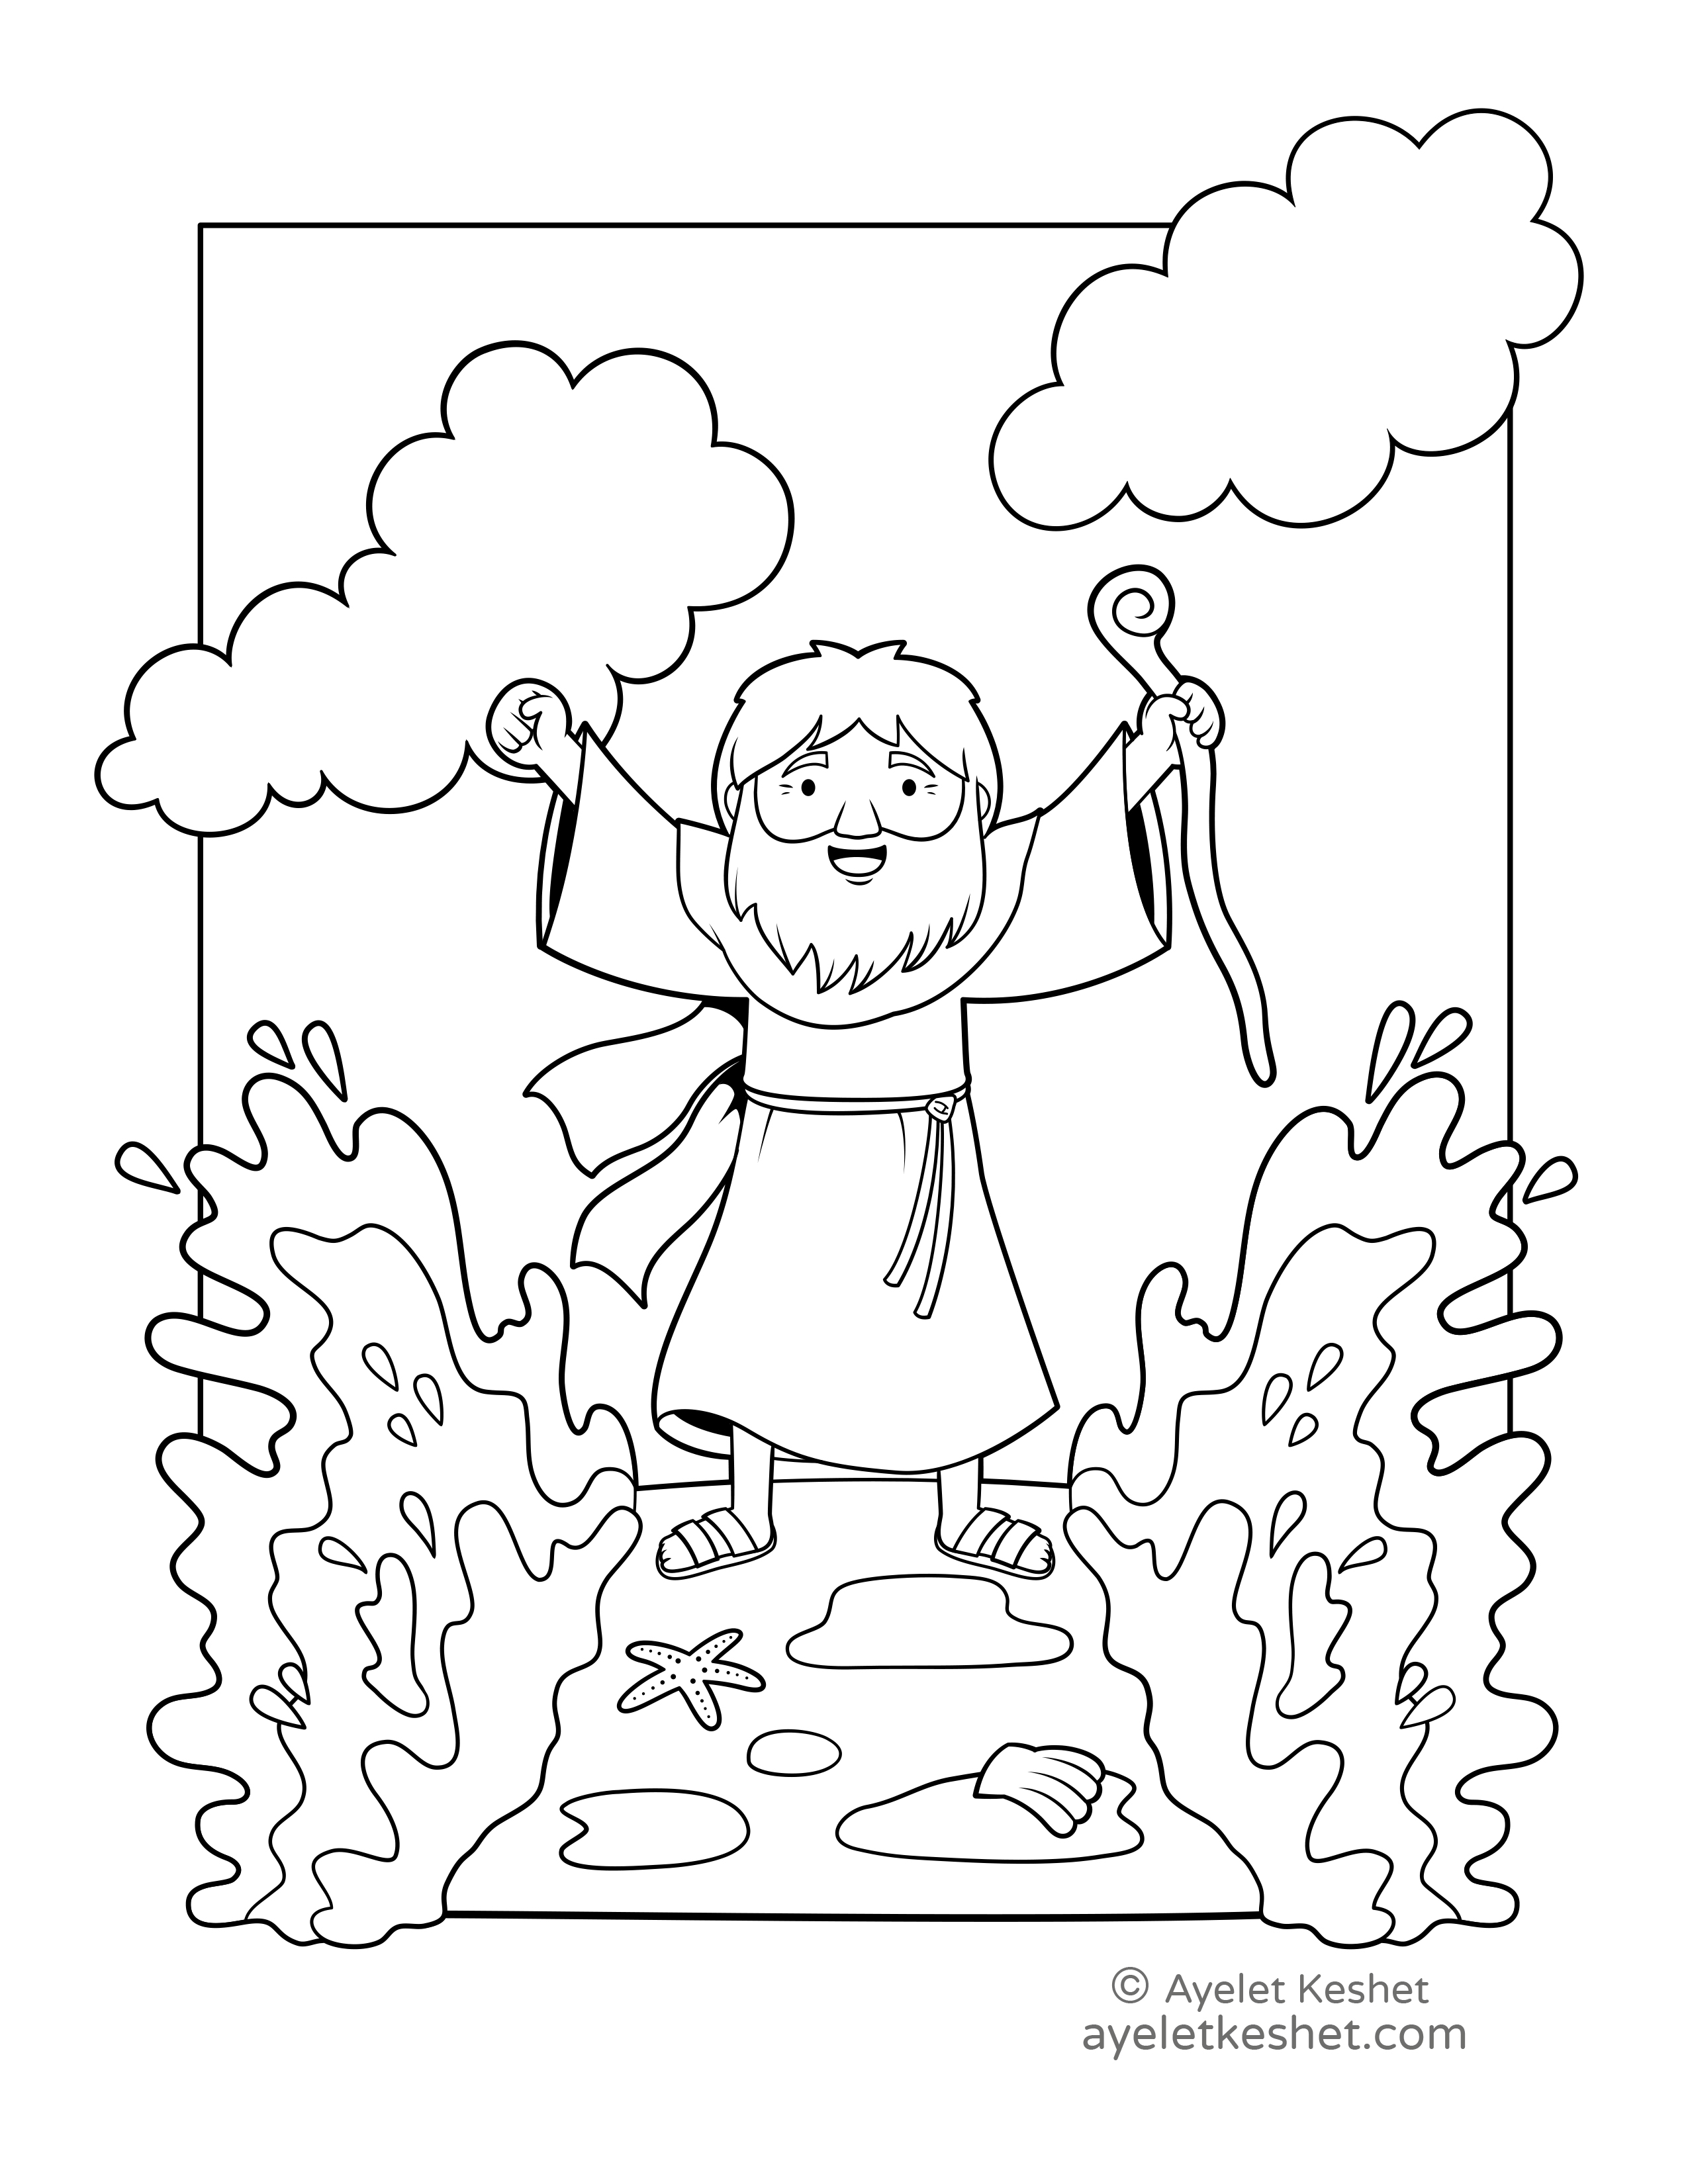 Passover Coloring Pages With Cute Illustrations